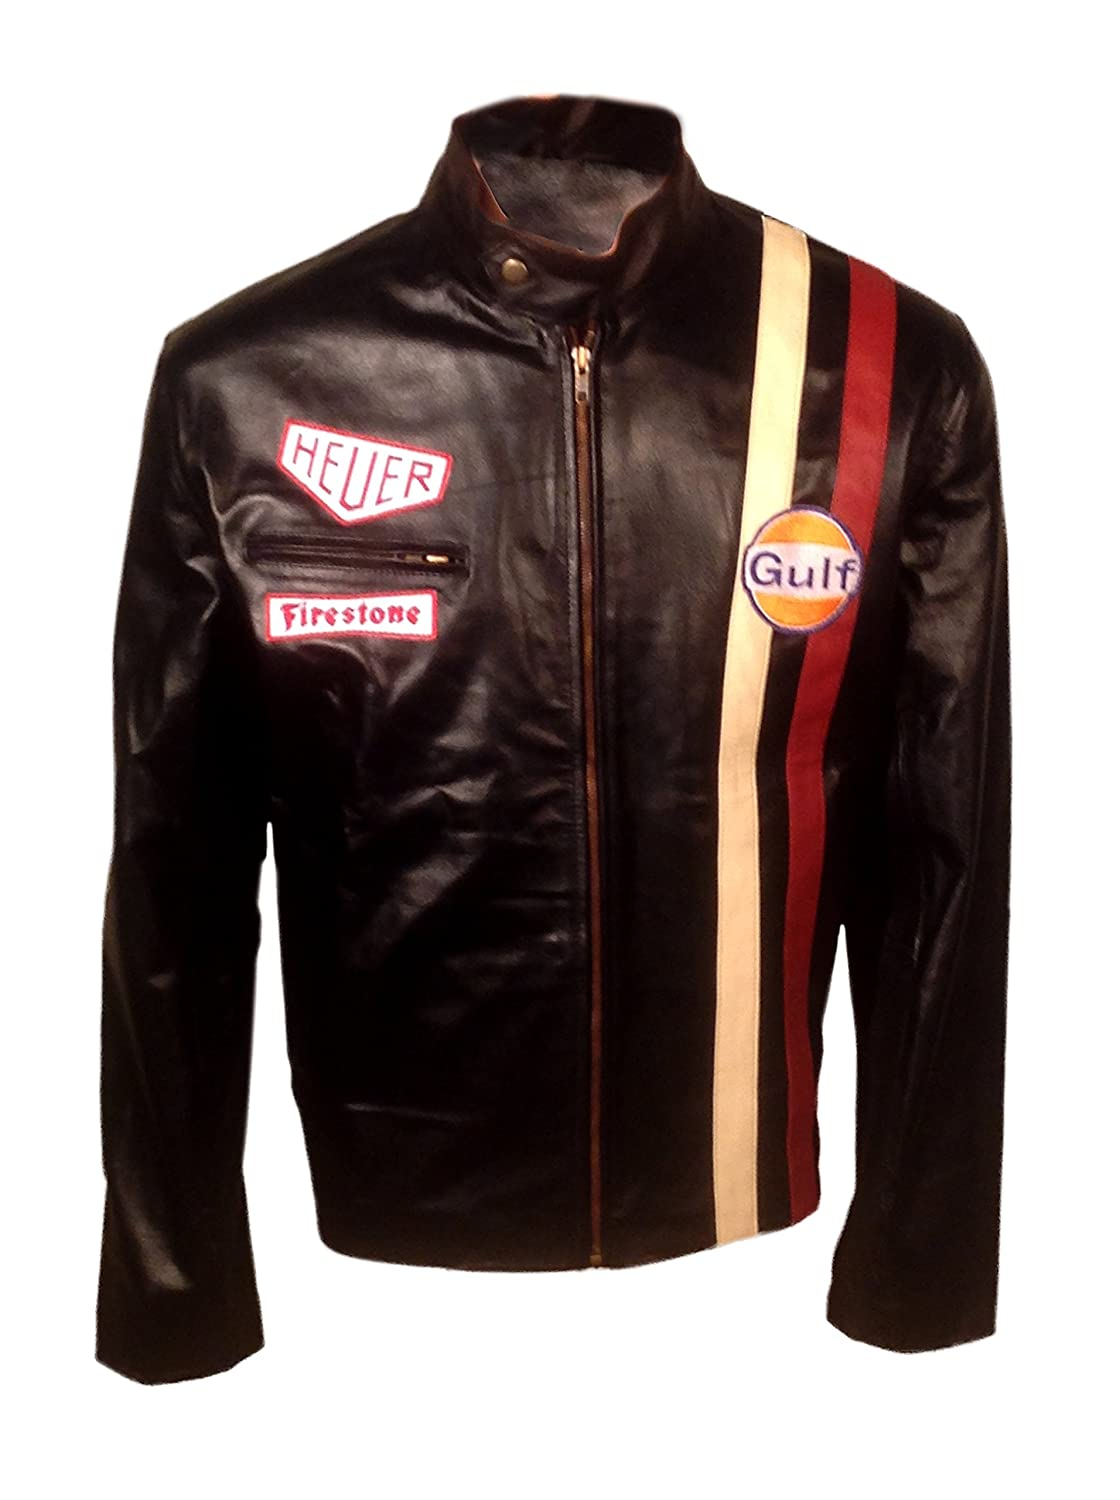 Gulf Steve McQueen Classic Grand Prix Stylish Leather Biker Jacket